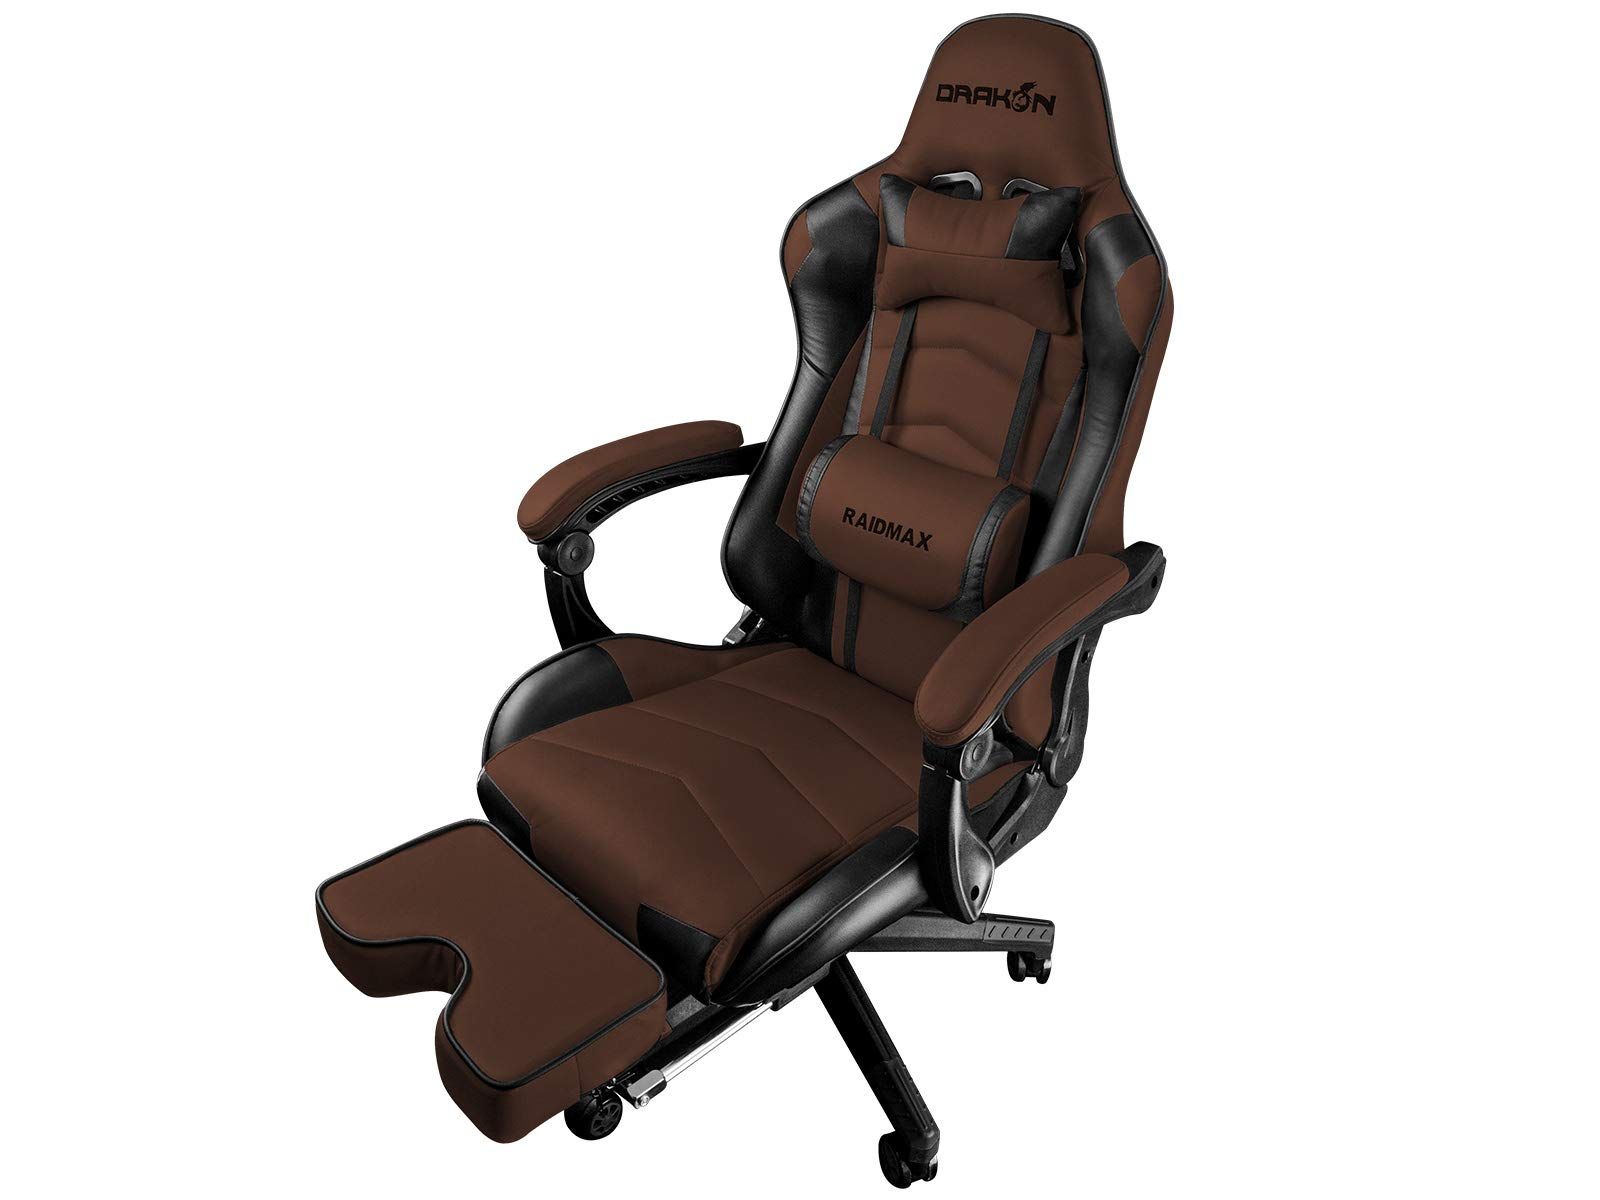 Raidmax DK709 Drakon Gaming Chair Ergonomic Racing Style Pu Leather Seat, Headrest with Foldable Foot/Leg Rest (Brown) by Raidmax